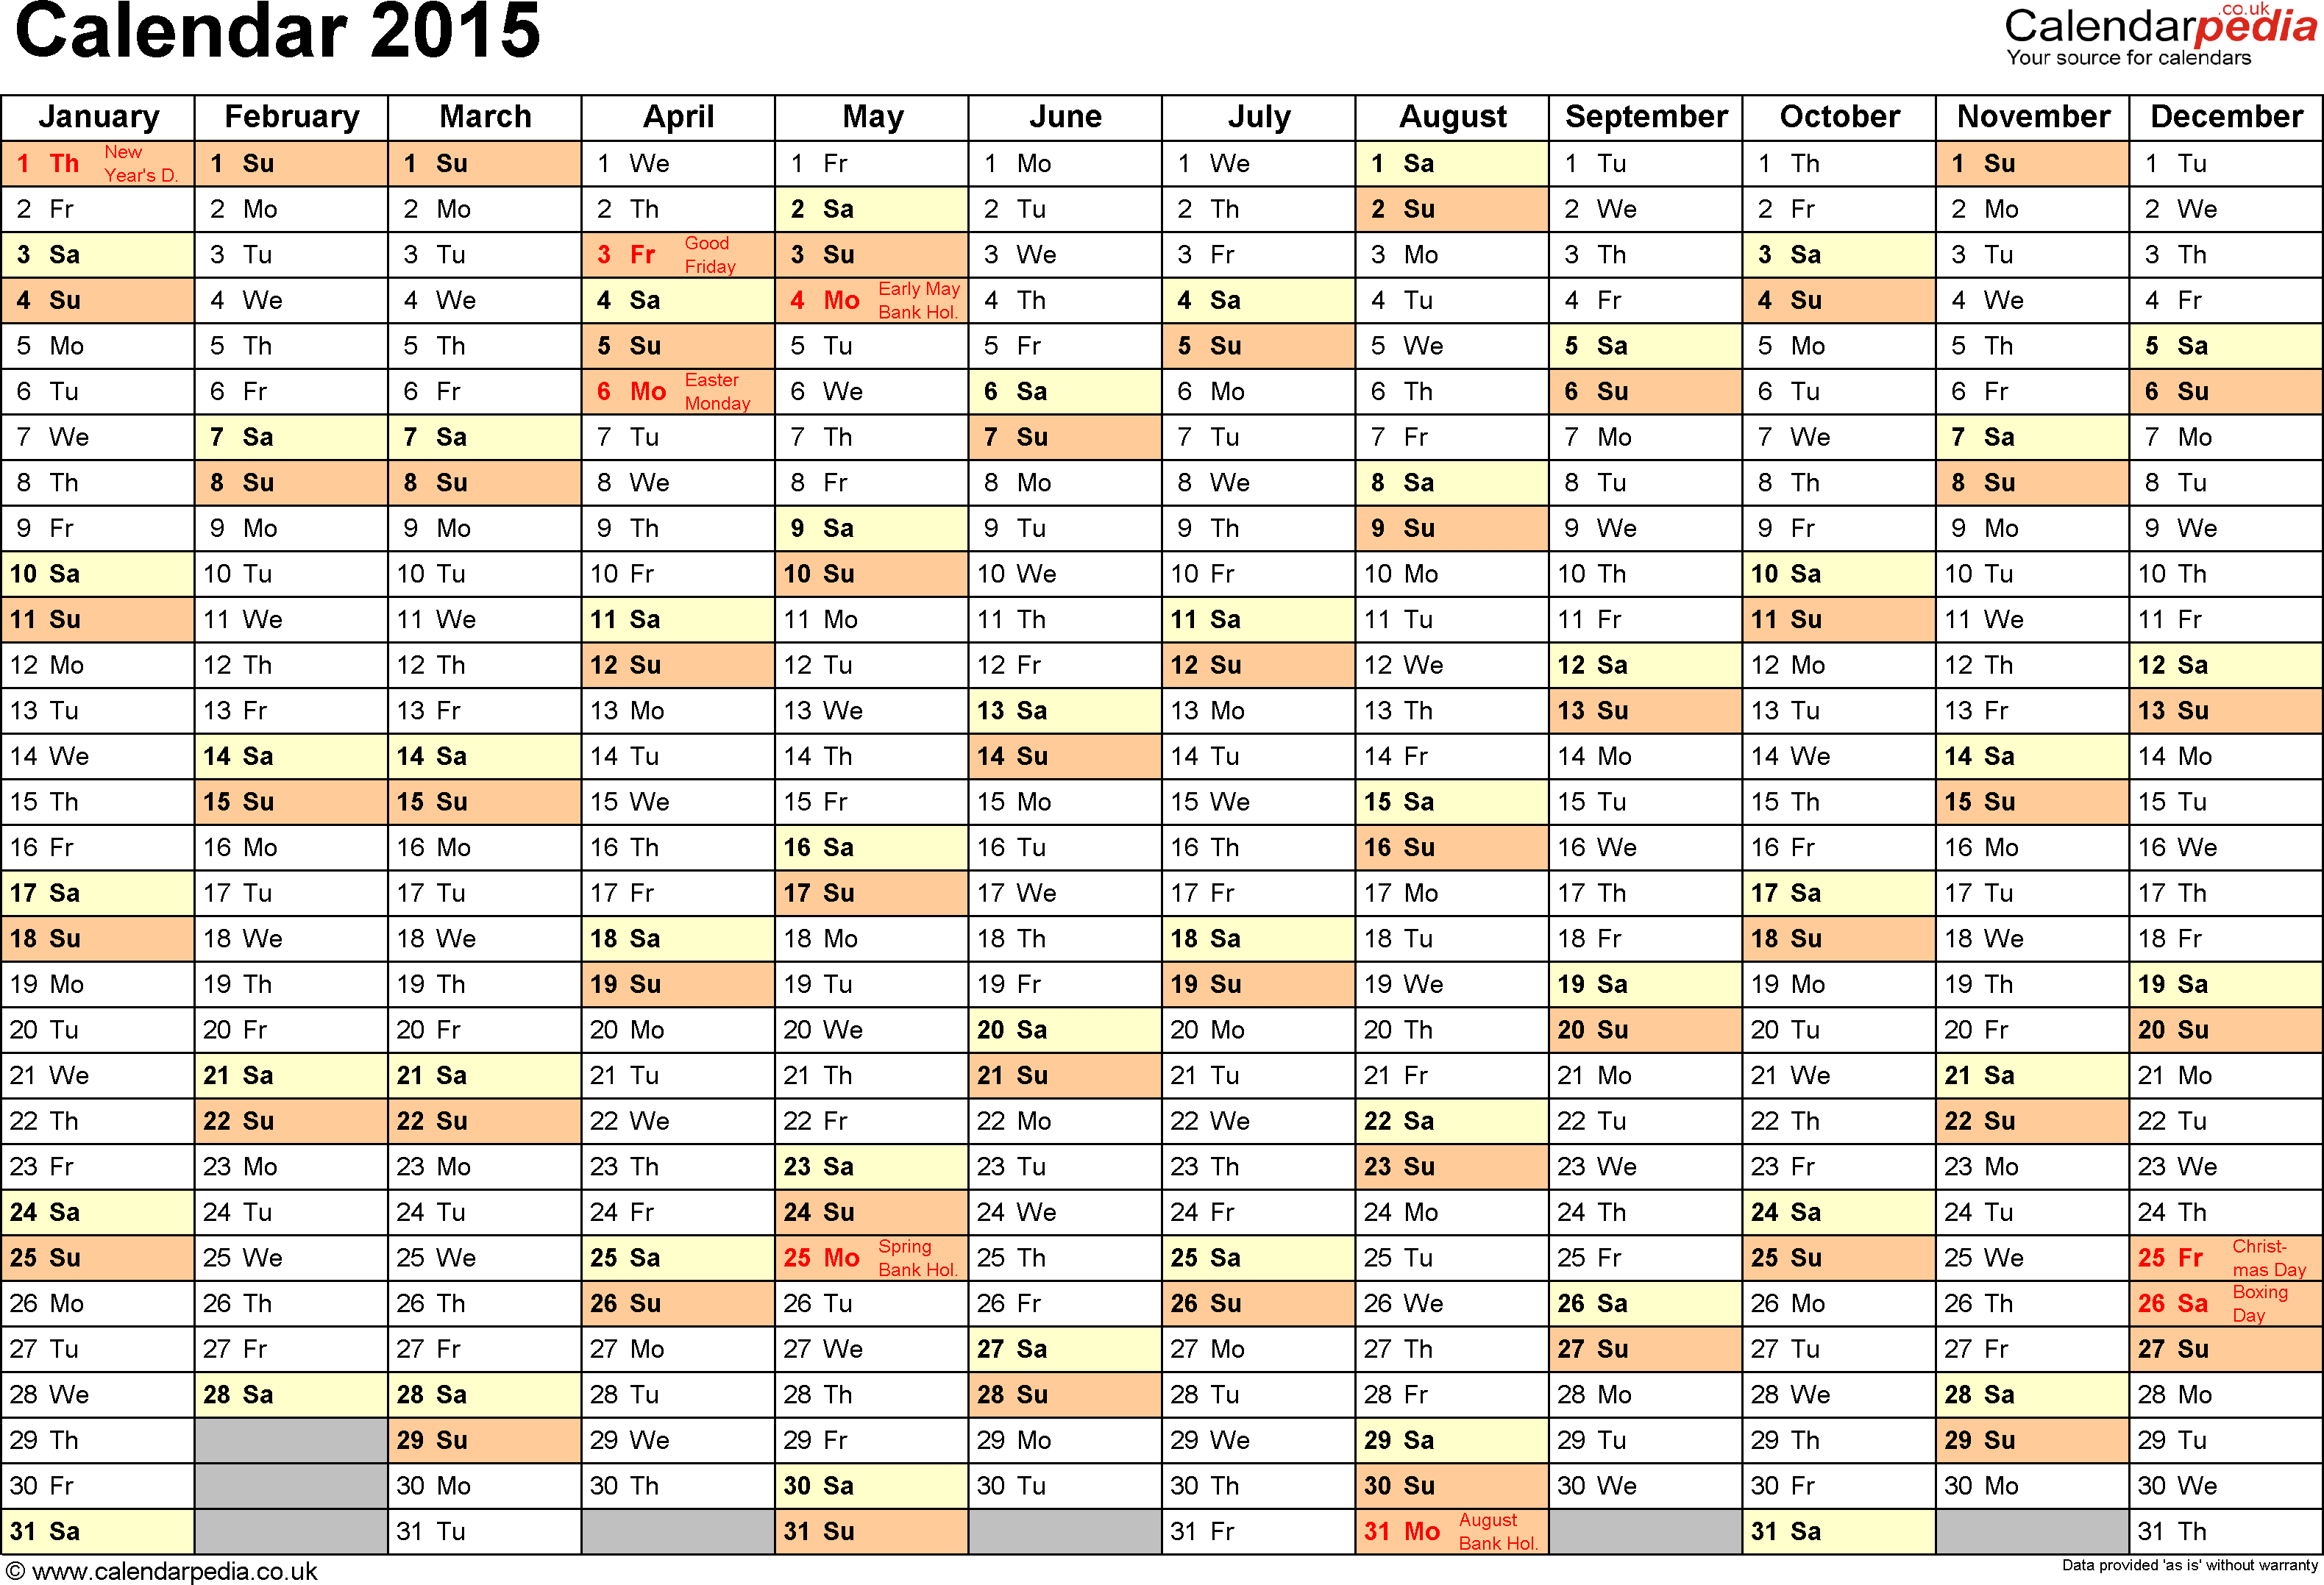 Download Template 2: Yearly calendar 2015 as Excel template, landscape orientation, A4, 1 page, months horizontally, days vertically, with UK bank holidays and week numbers